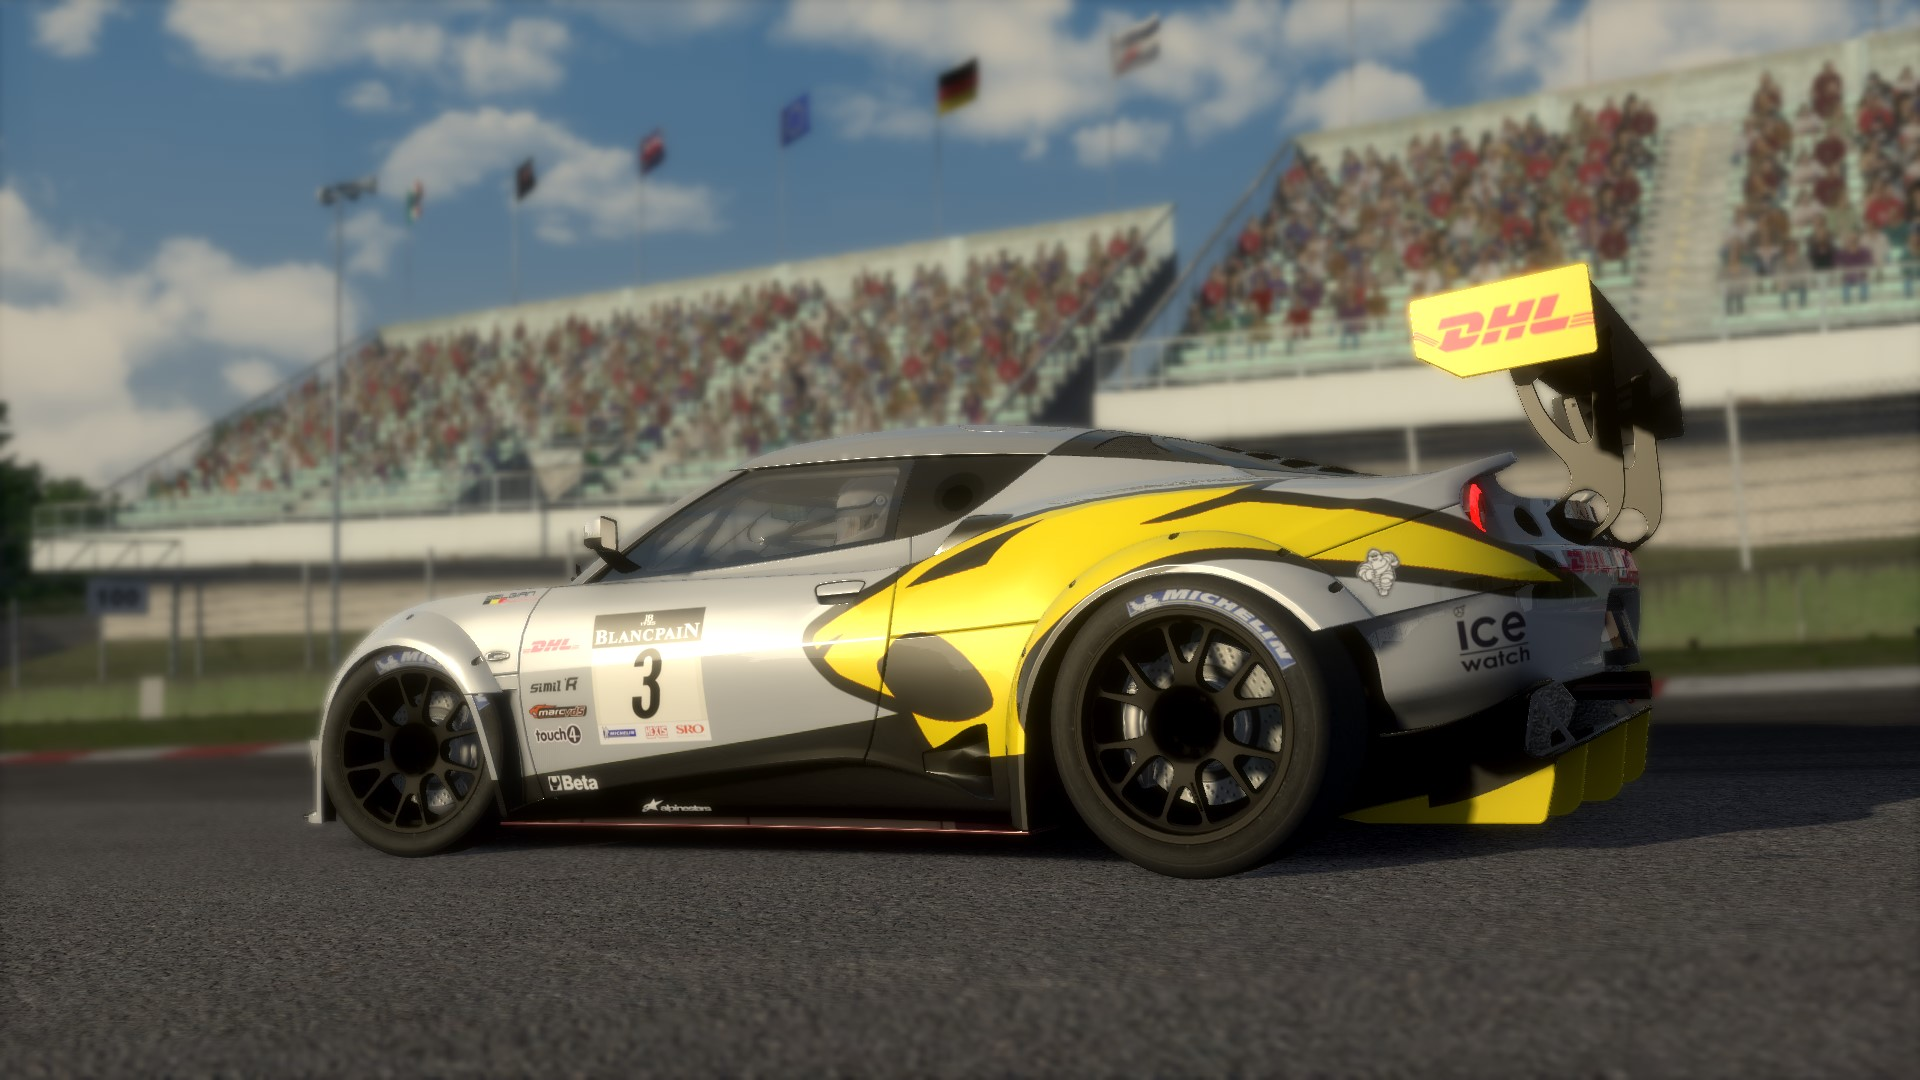 Screenshot_lotus_evora_gx_imola_6-12-2014-1-13-51.jpg